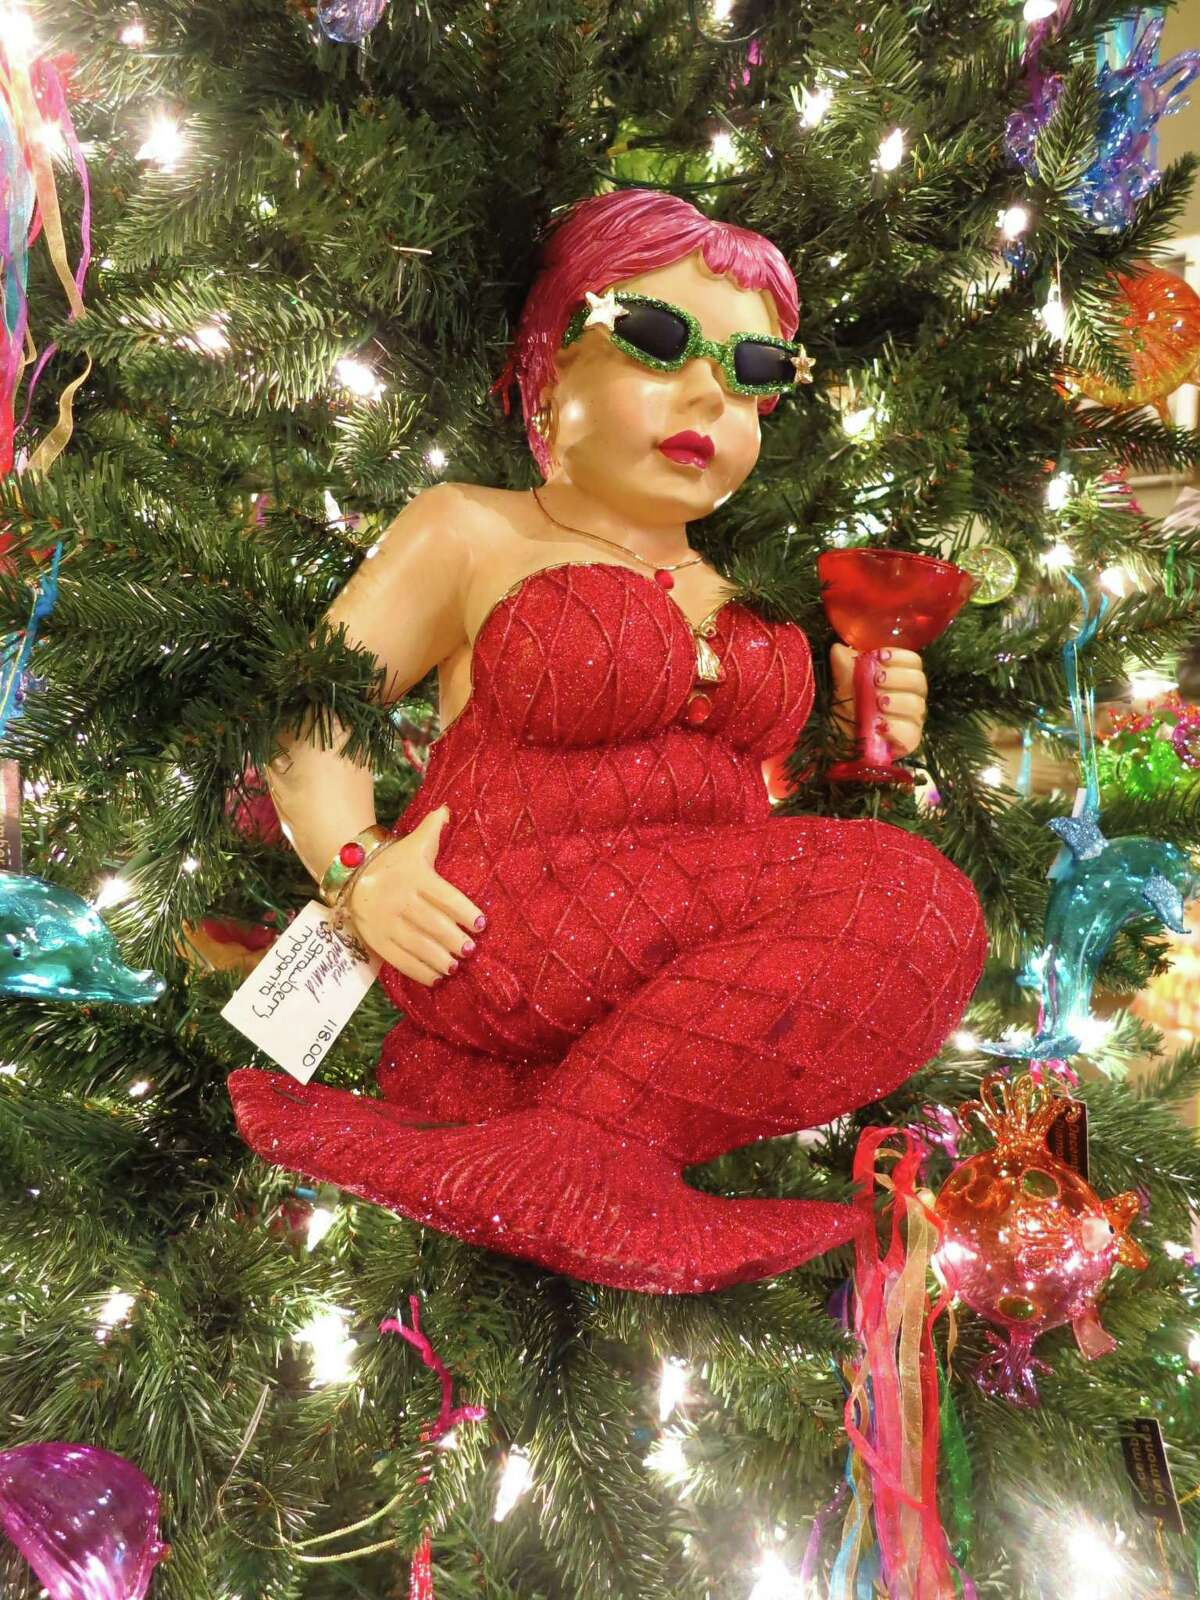 The shop is called The Naked Mermaid, but this mermaid tree ornament comes all decked out in holiday finery in Galveston.